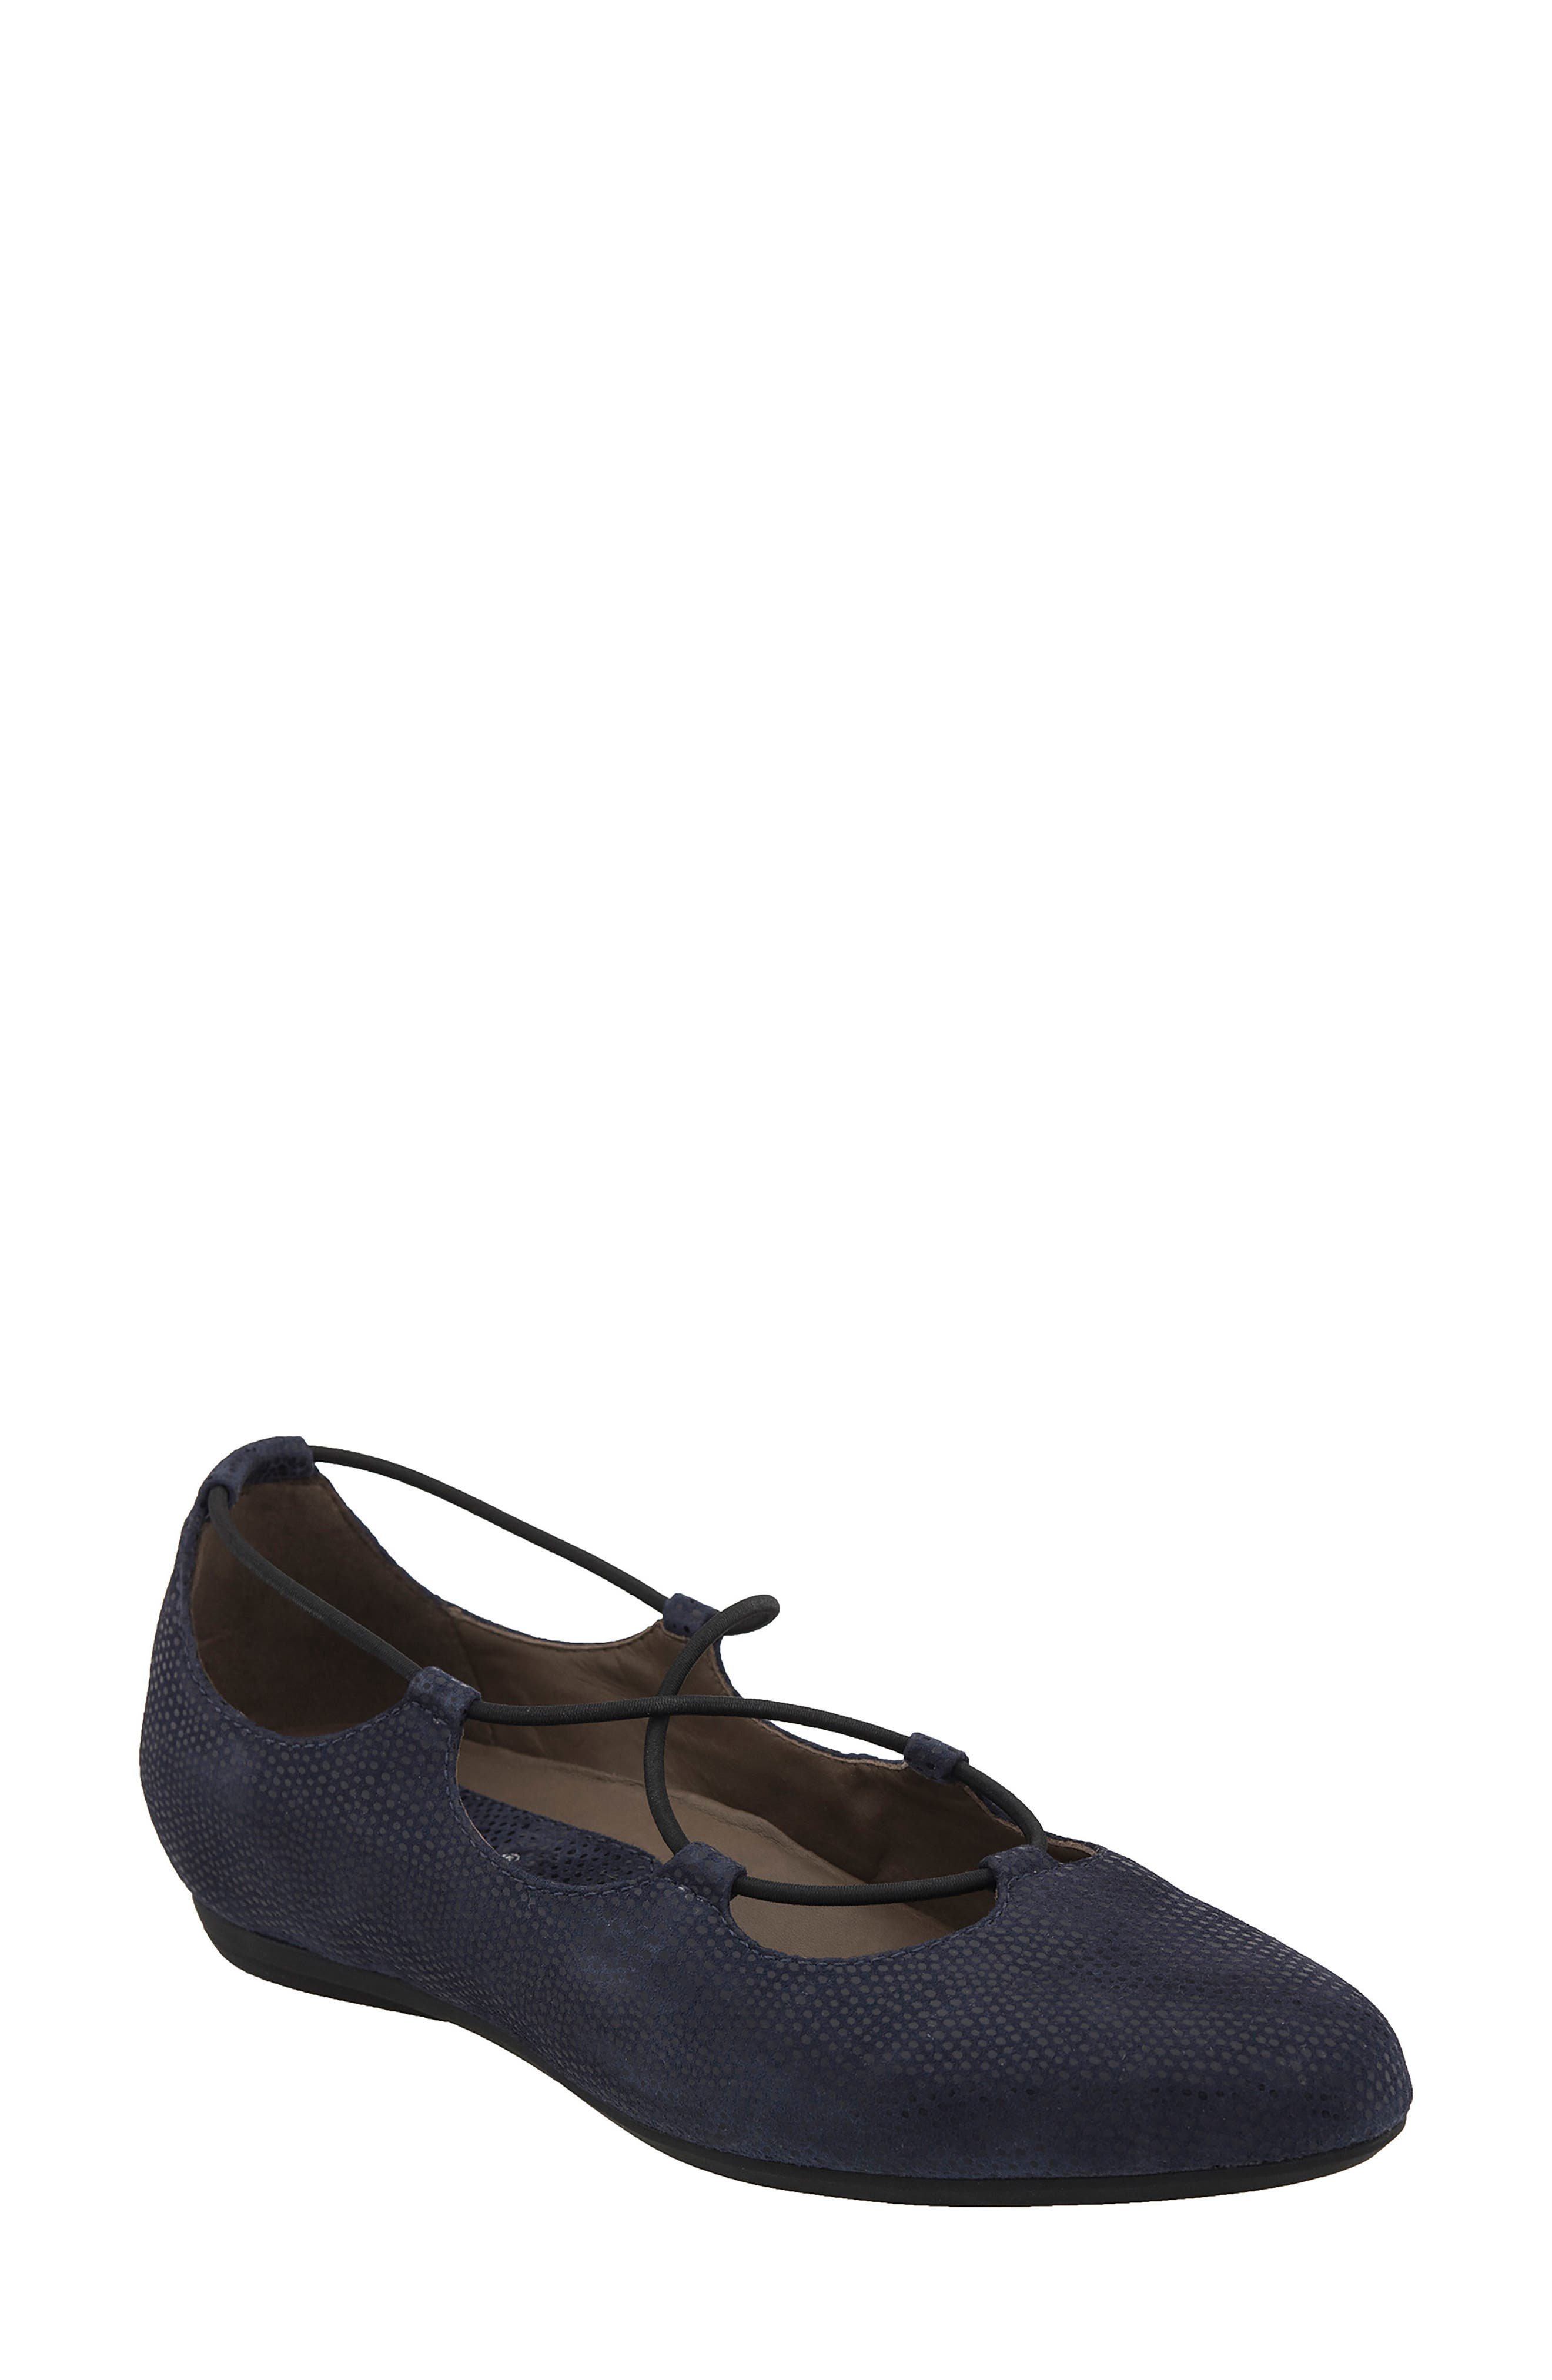 'Essen' Ghillie Flat,                             Main thumbnail 1, color,                             Navy Printed Suede